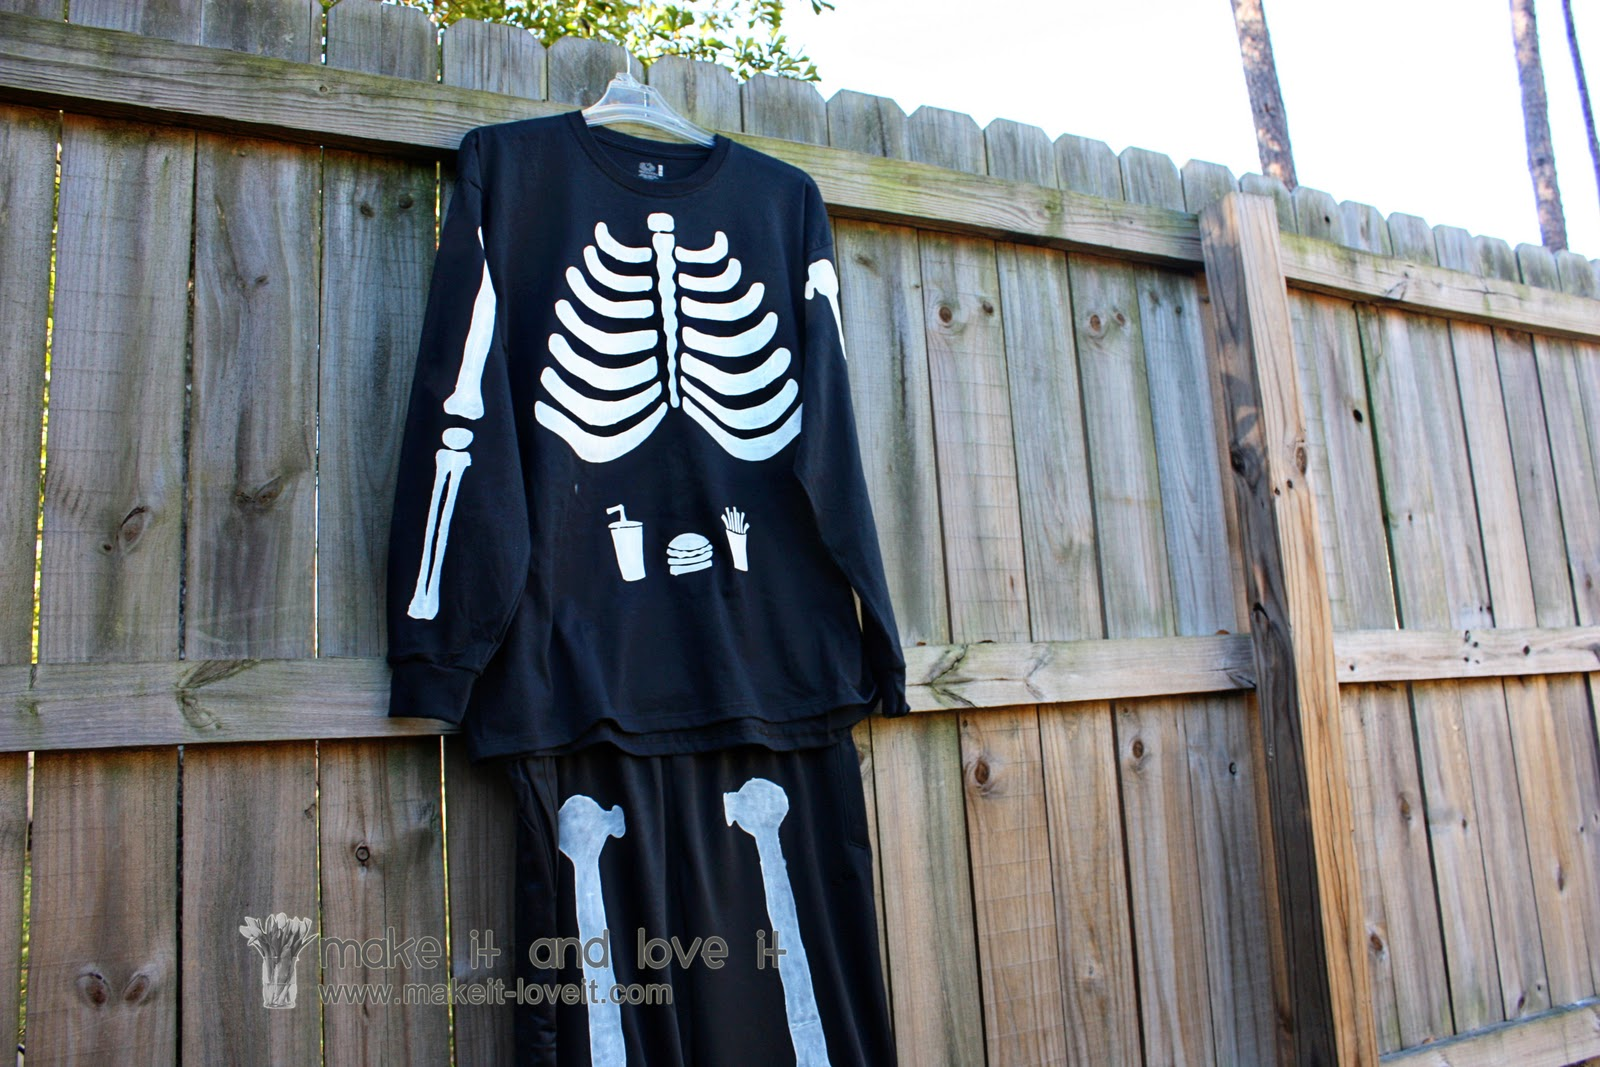 Our Last Minute Adult Costumes Pregnant Skeleton and Matching Husband | Make It and Love It & Our Last Minute Adult Costumes: Pregnant Skeleton and Matching ...